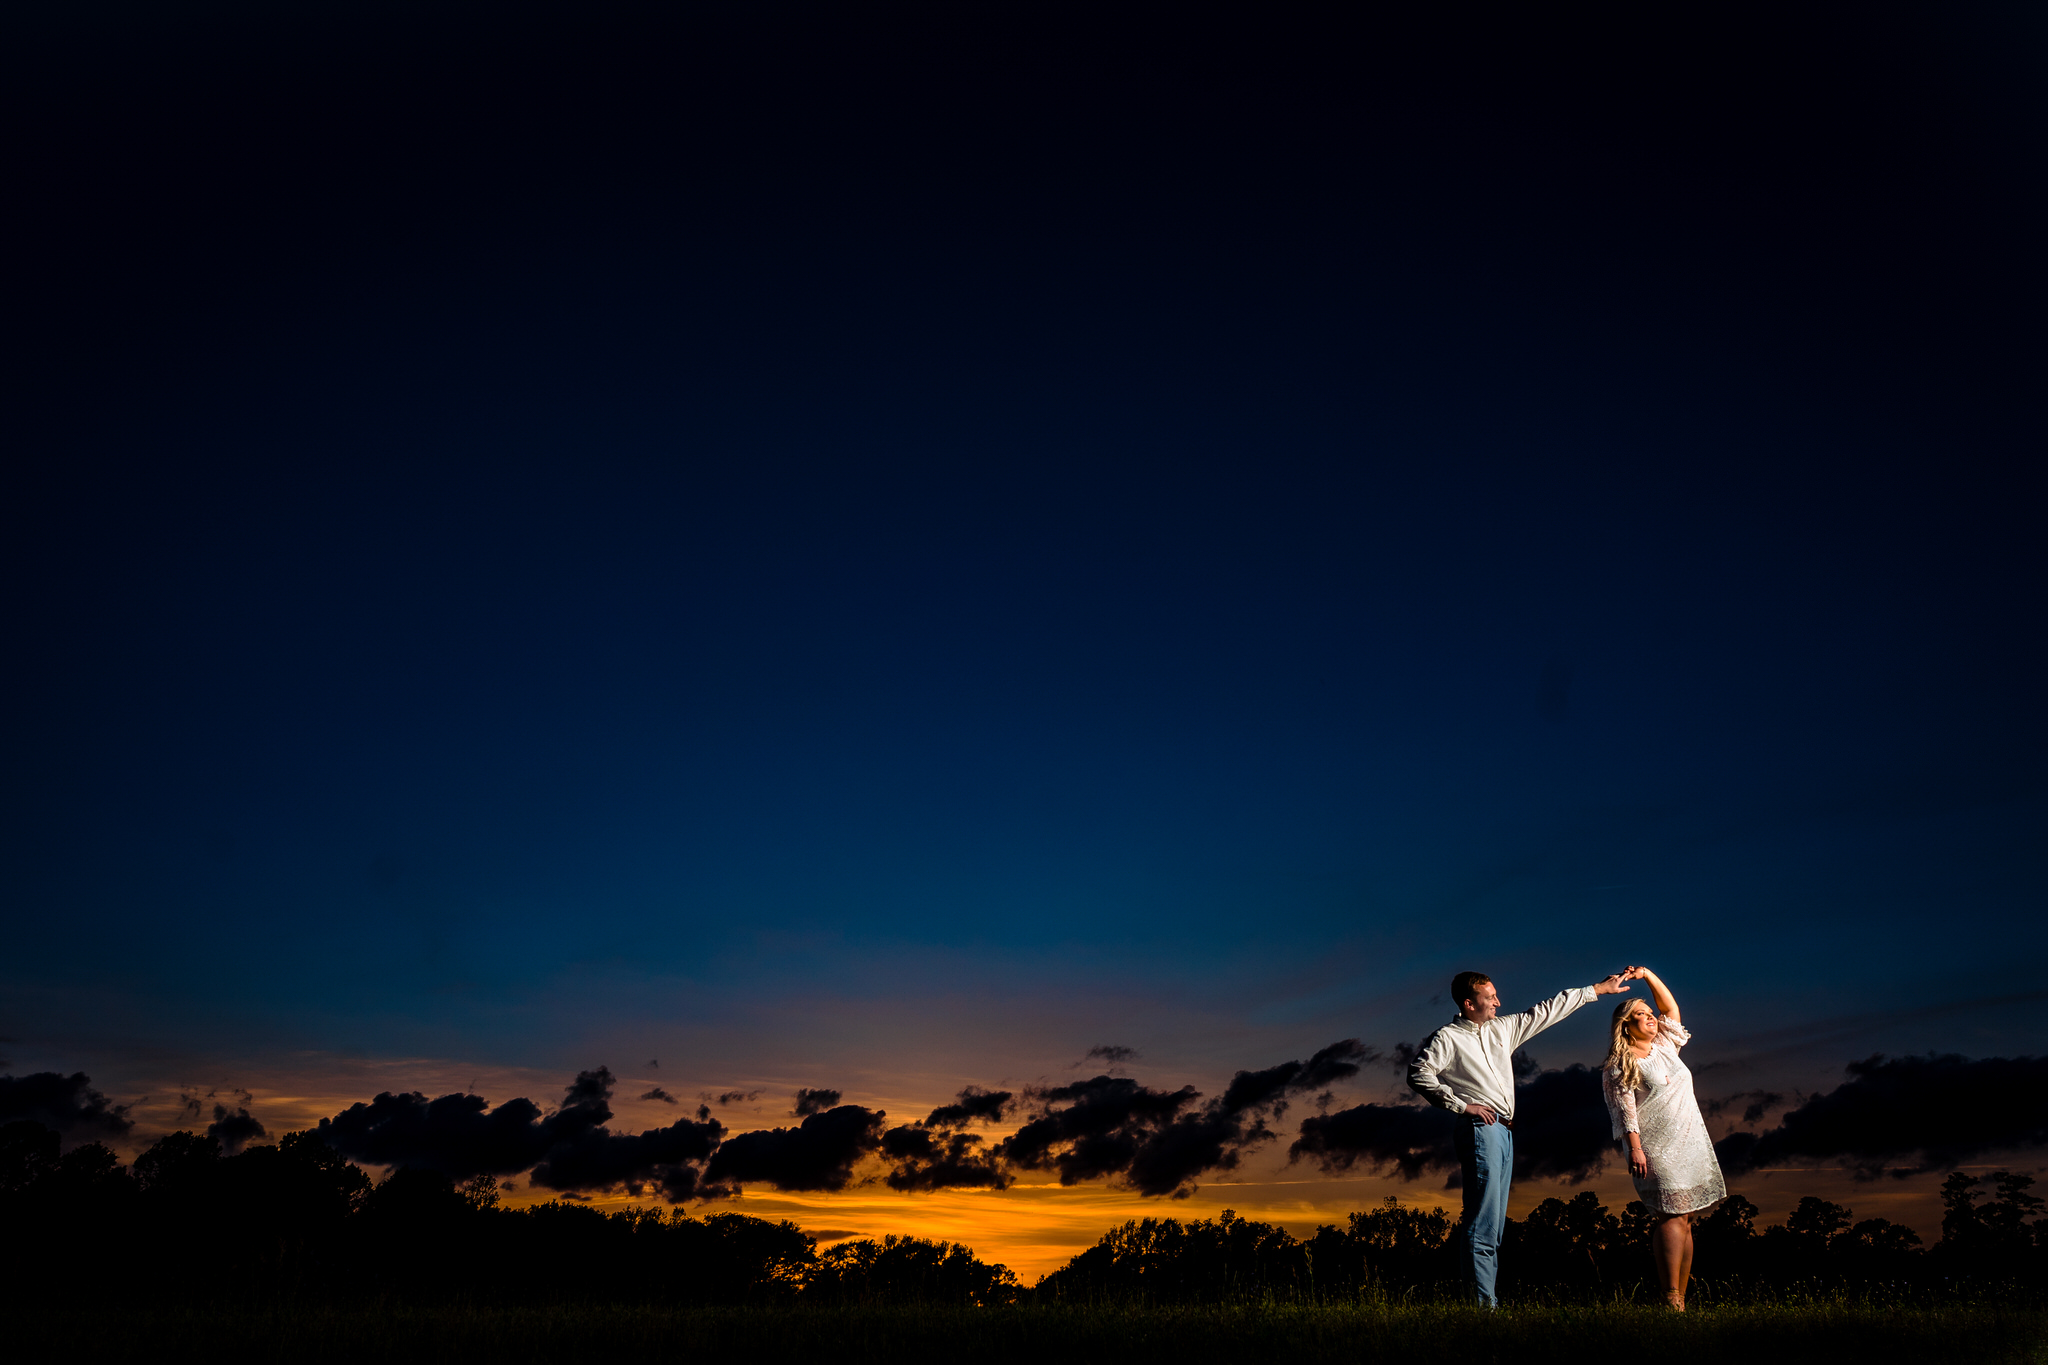 Nikki&Logan-Engagement-Cottonwood-Farm15.jpg